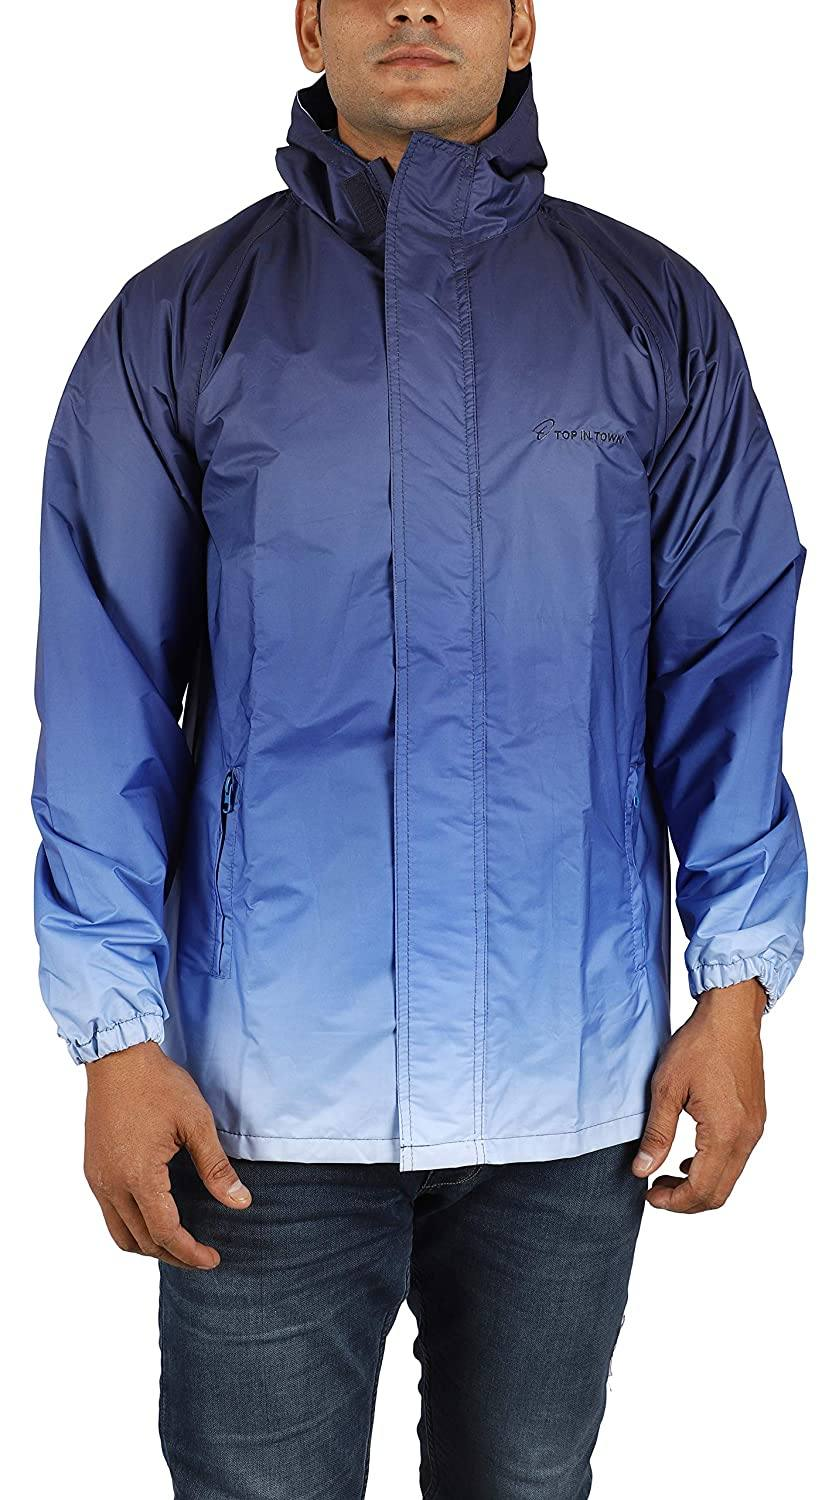 Romano nx Waterproof Trendy Rain Jacket for Men romanonx.com